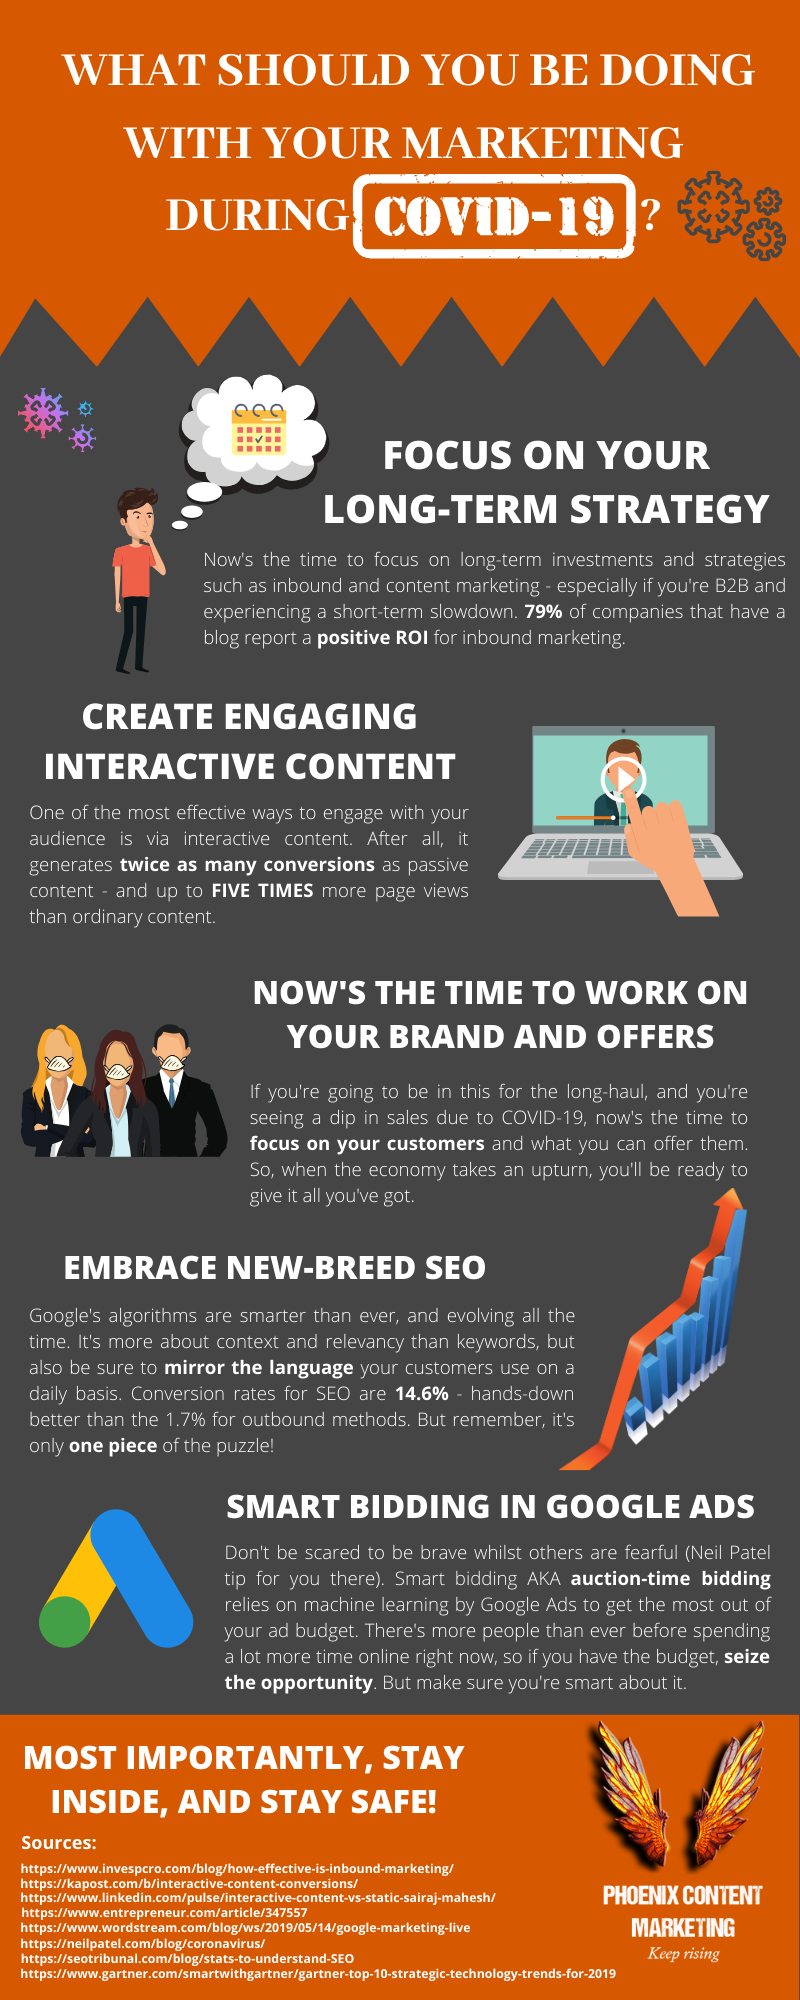 Marketing During COVID-19 Infographic